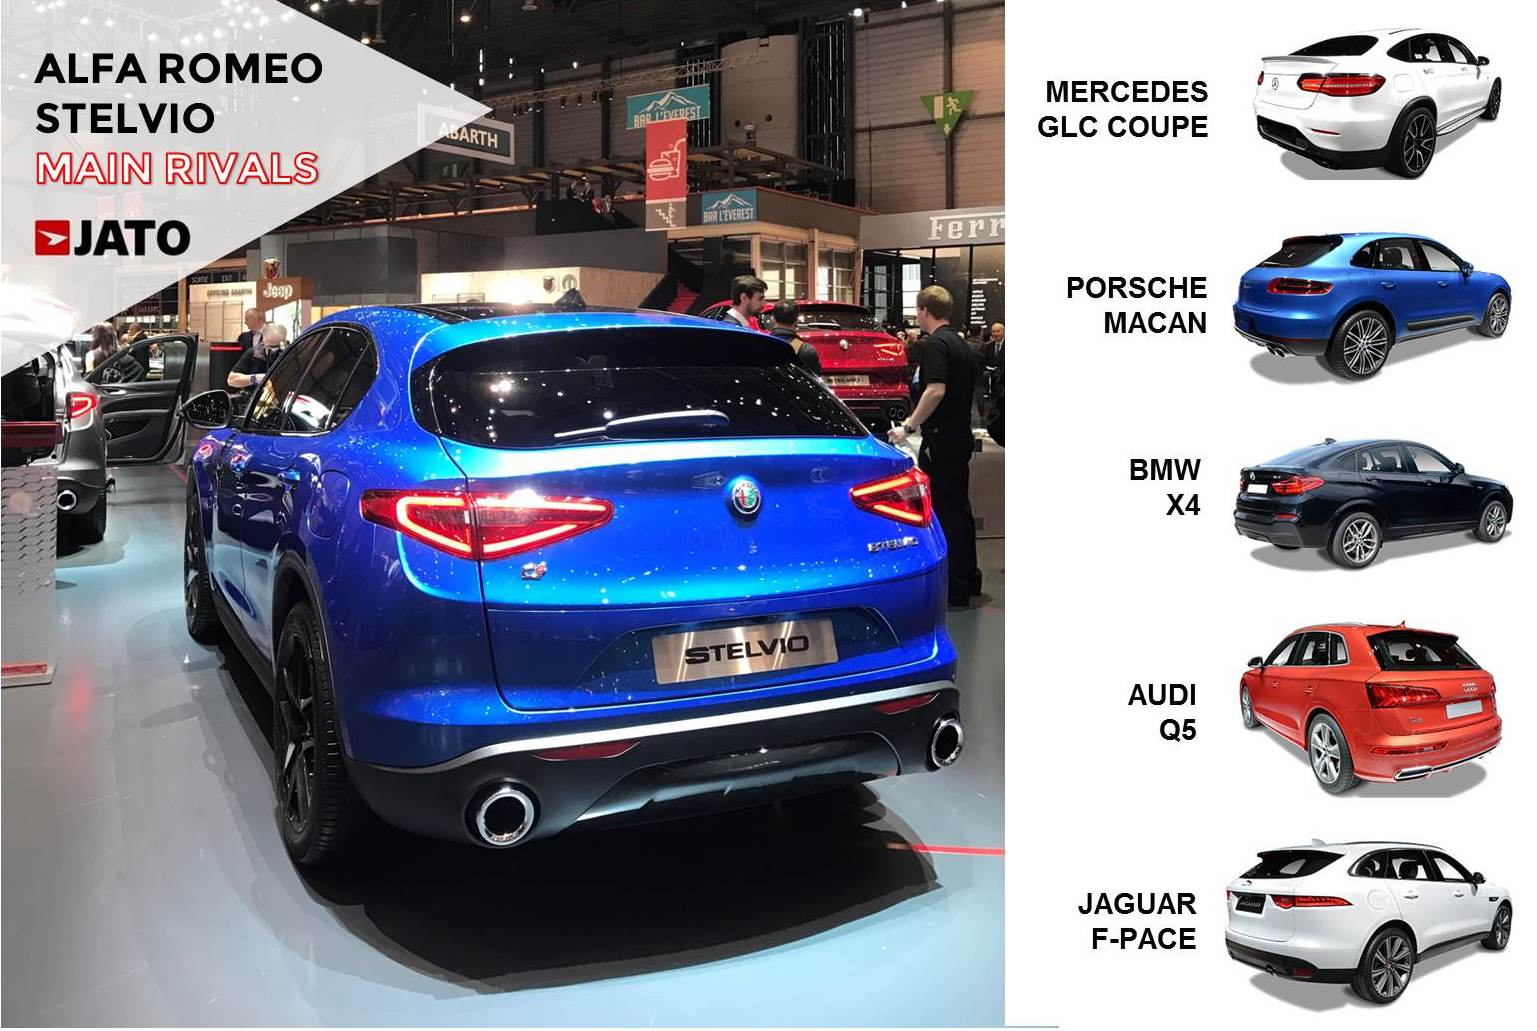 The new Stelvio is now the 5th product on Alfa's line up, and is expected to become its global top-seller. This car will likely hit the European top 5 best-selling premium D-SUV at its first full year of sales. However, the US is expected to be its main volume driver.